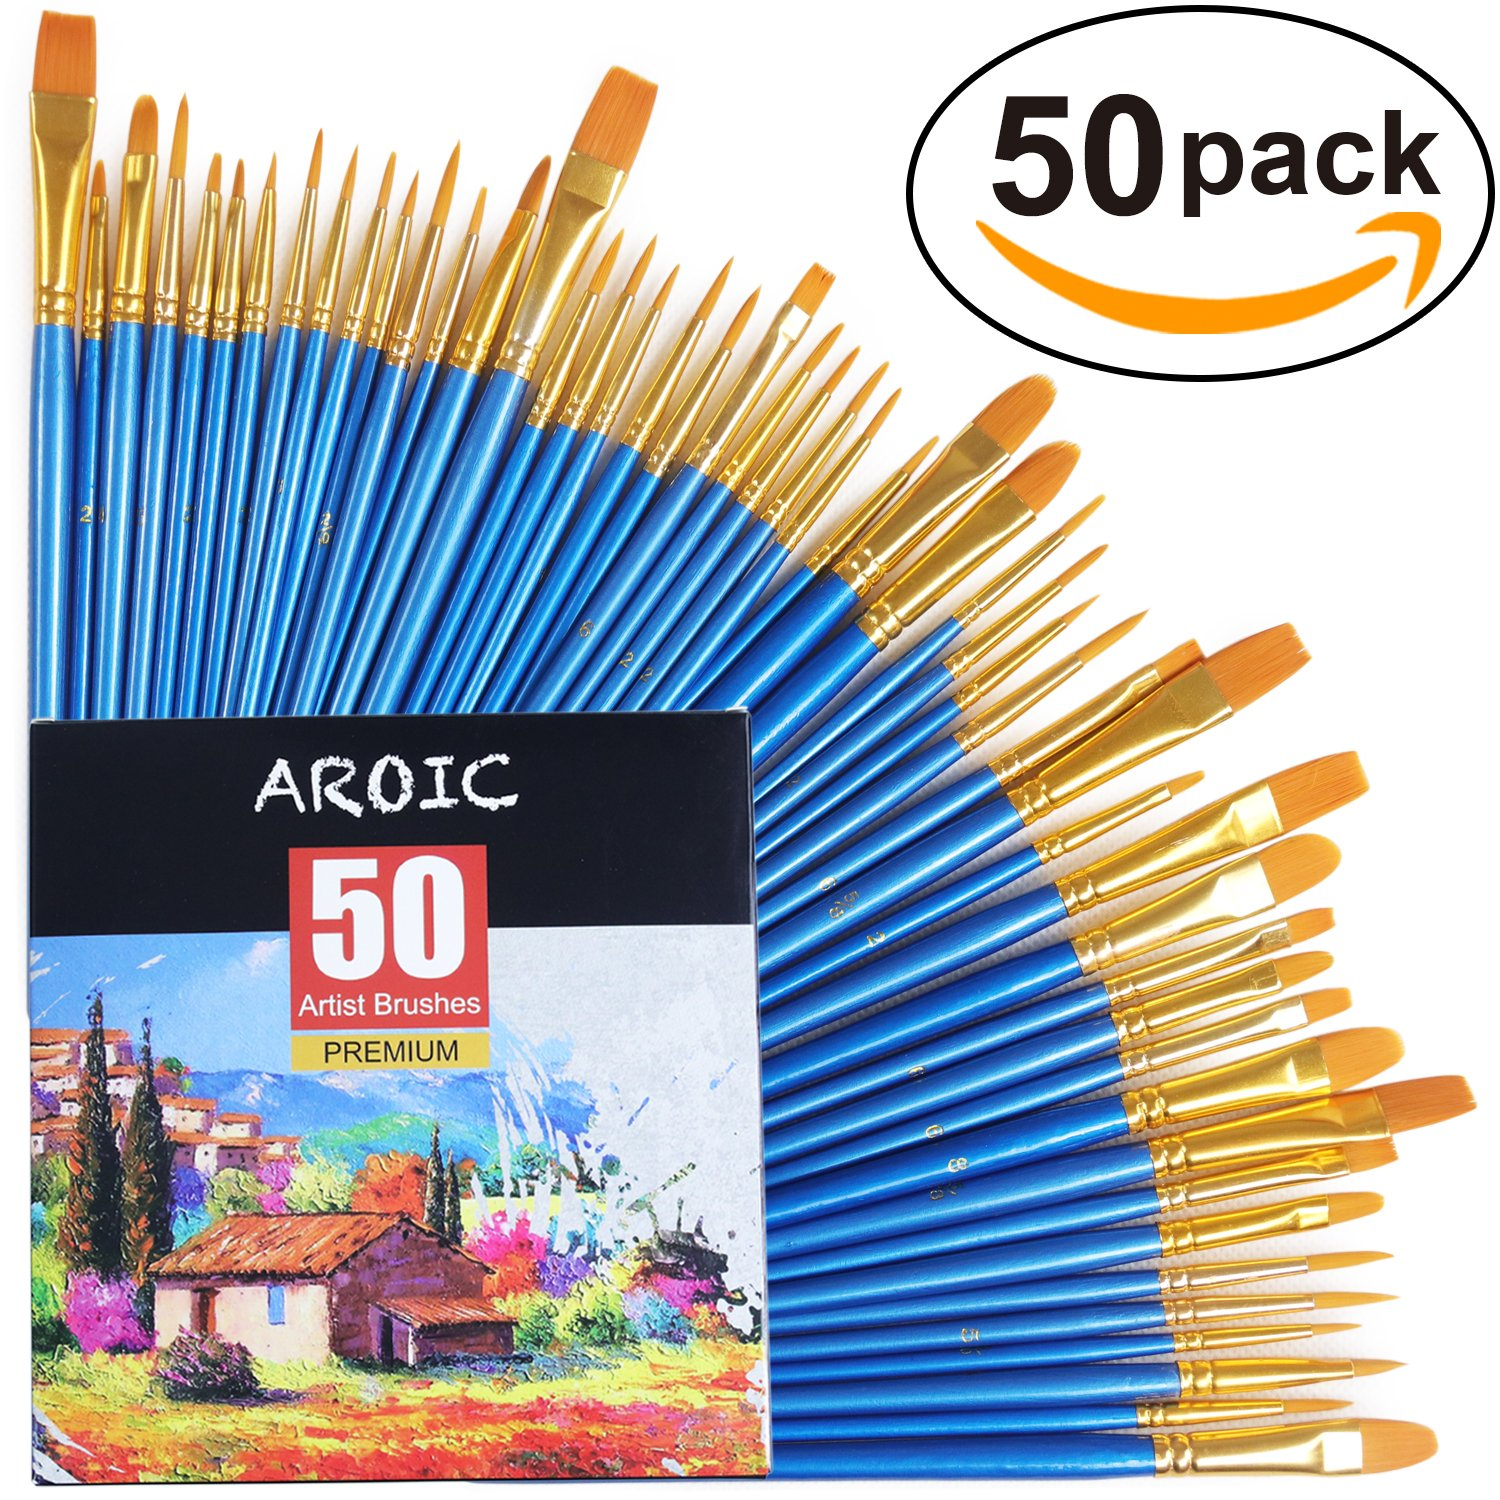 Paint Brush Set, 50 pcs Nylon Hair Brushes for Acrylic Oil Watercolor Painting Artist Professional Painting Kits